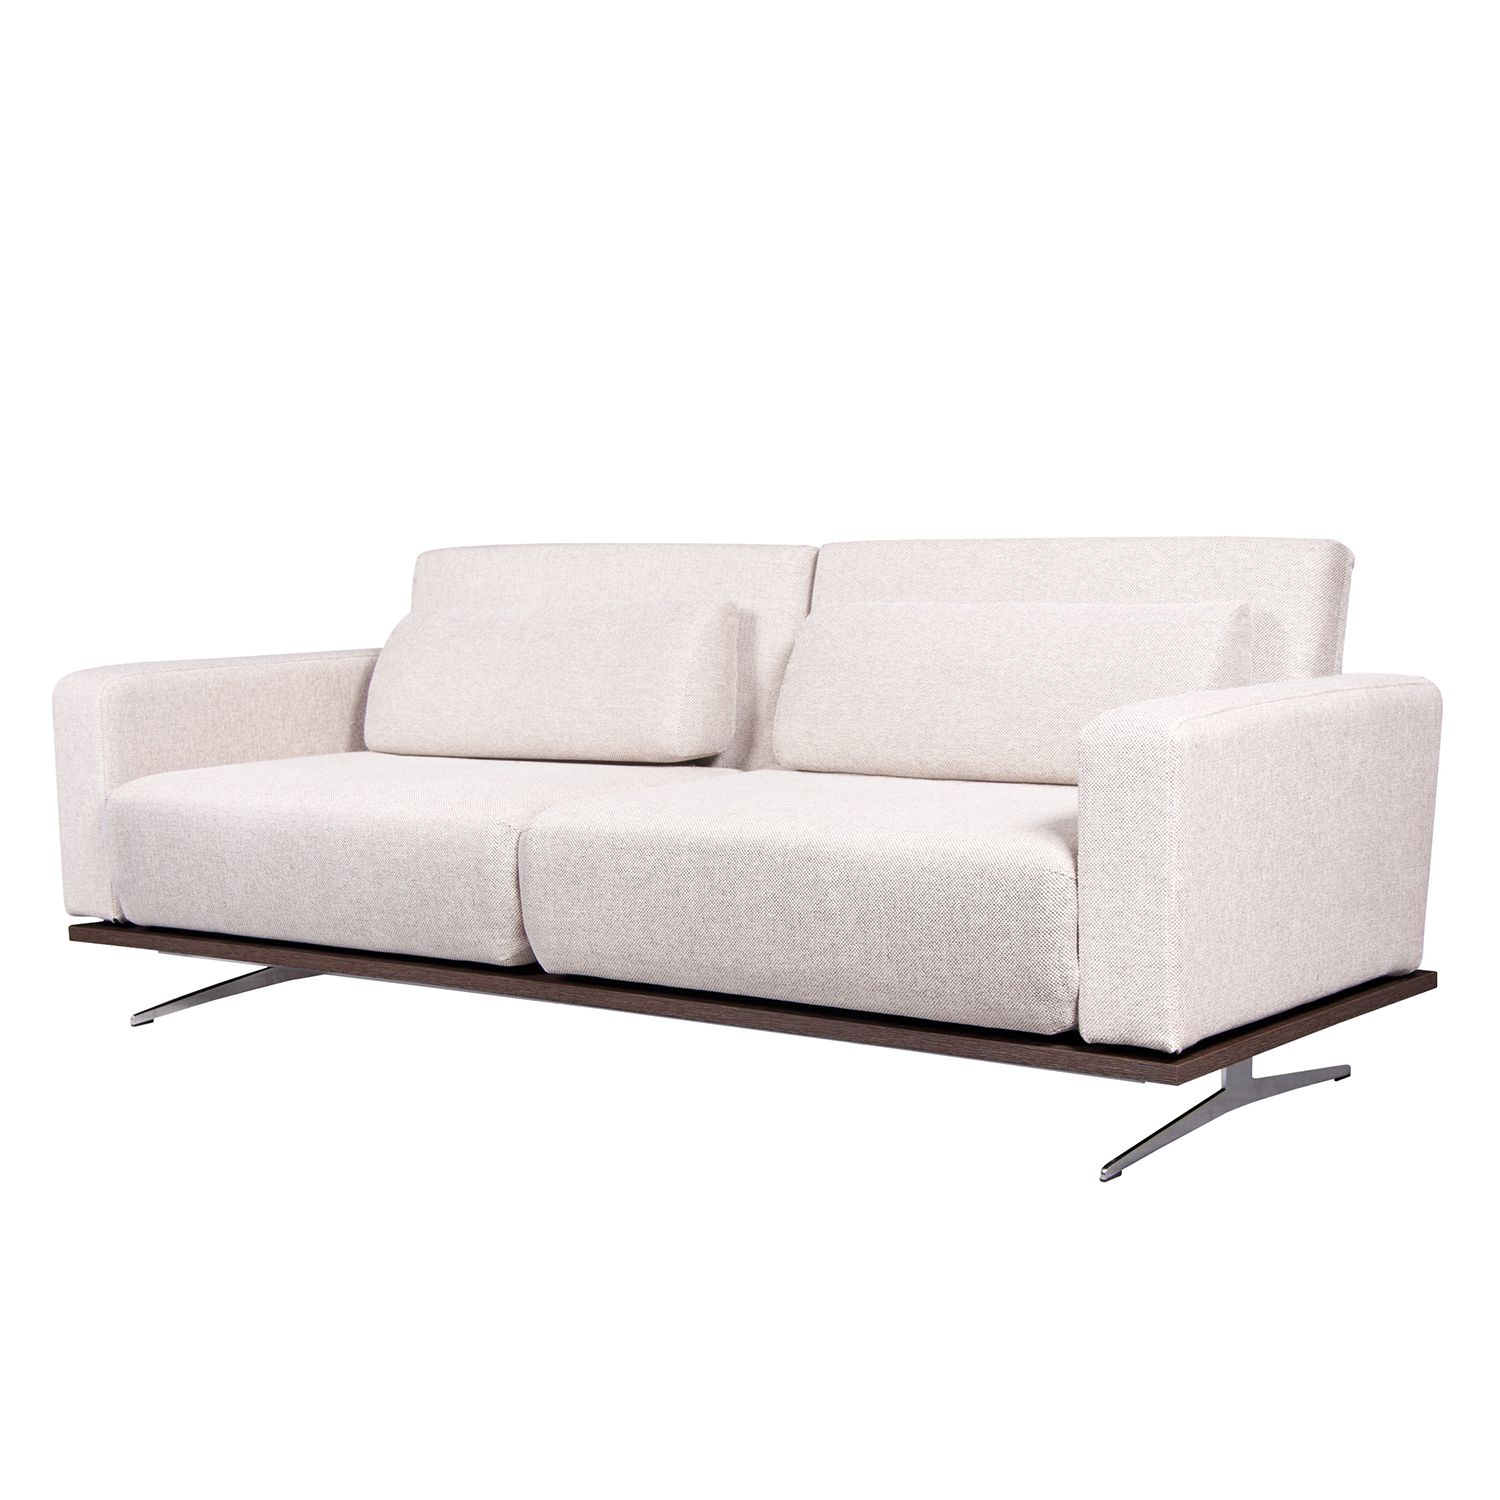 Schlafsofa Copperfield I Webstoff